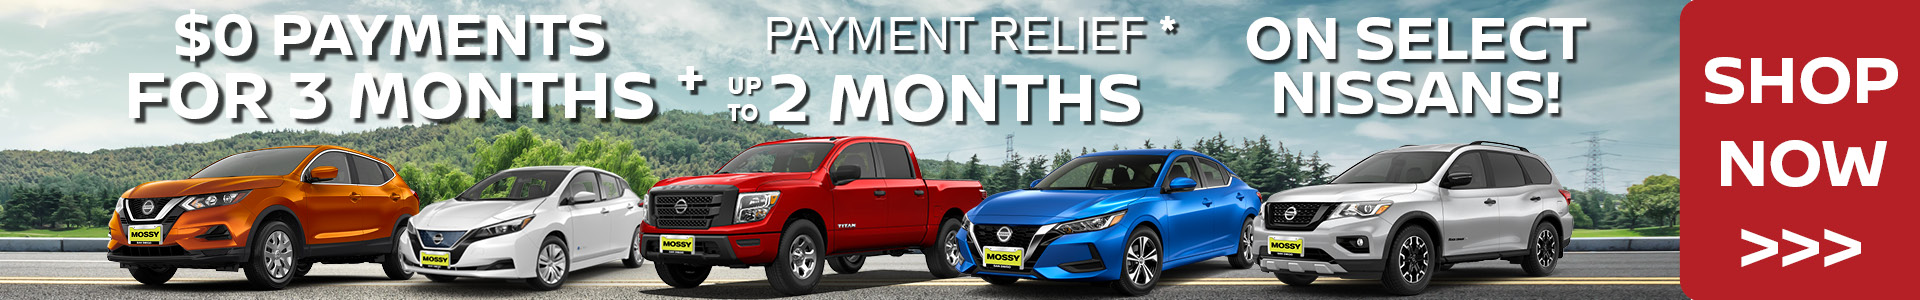 Mossy Nissan - Deferred Payments - SRP